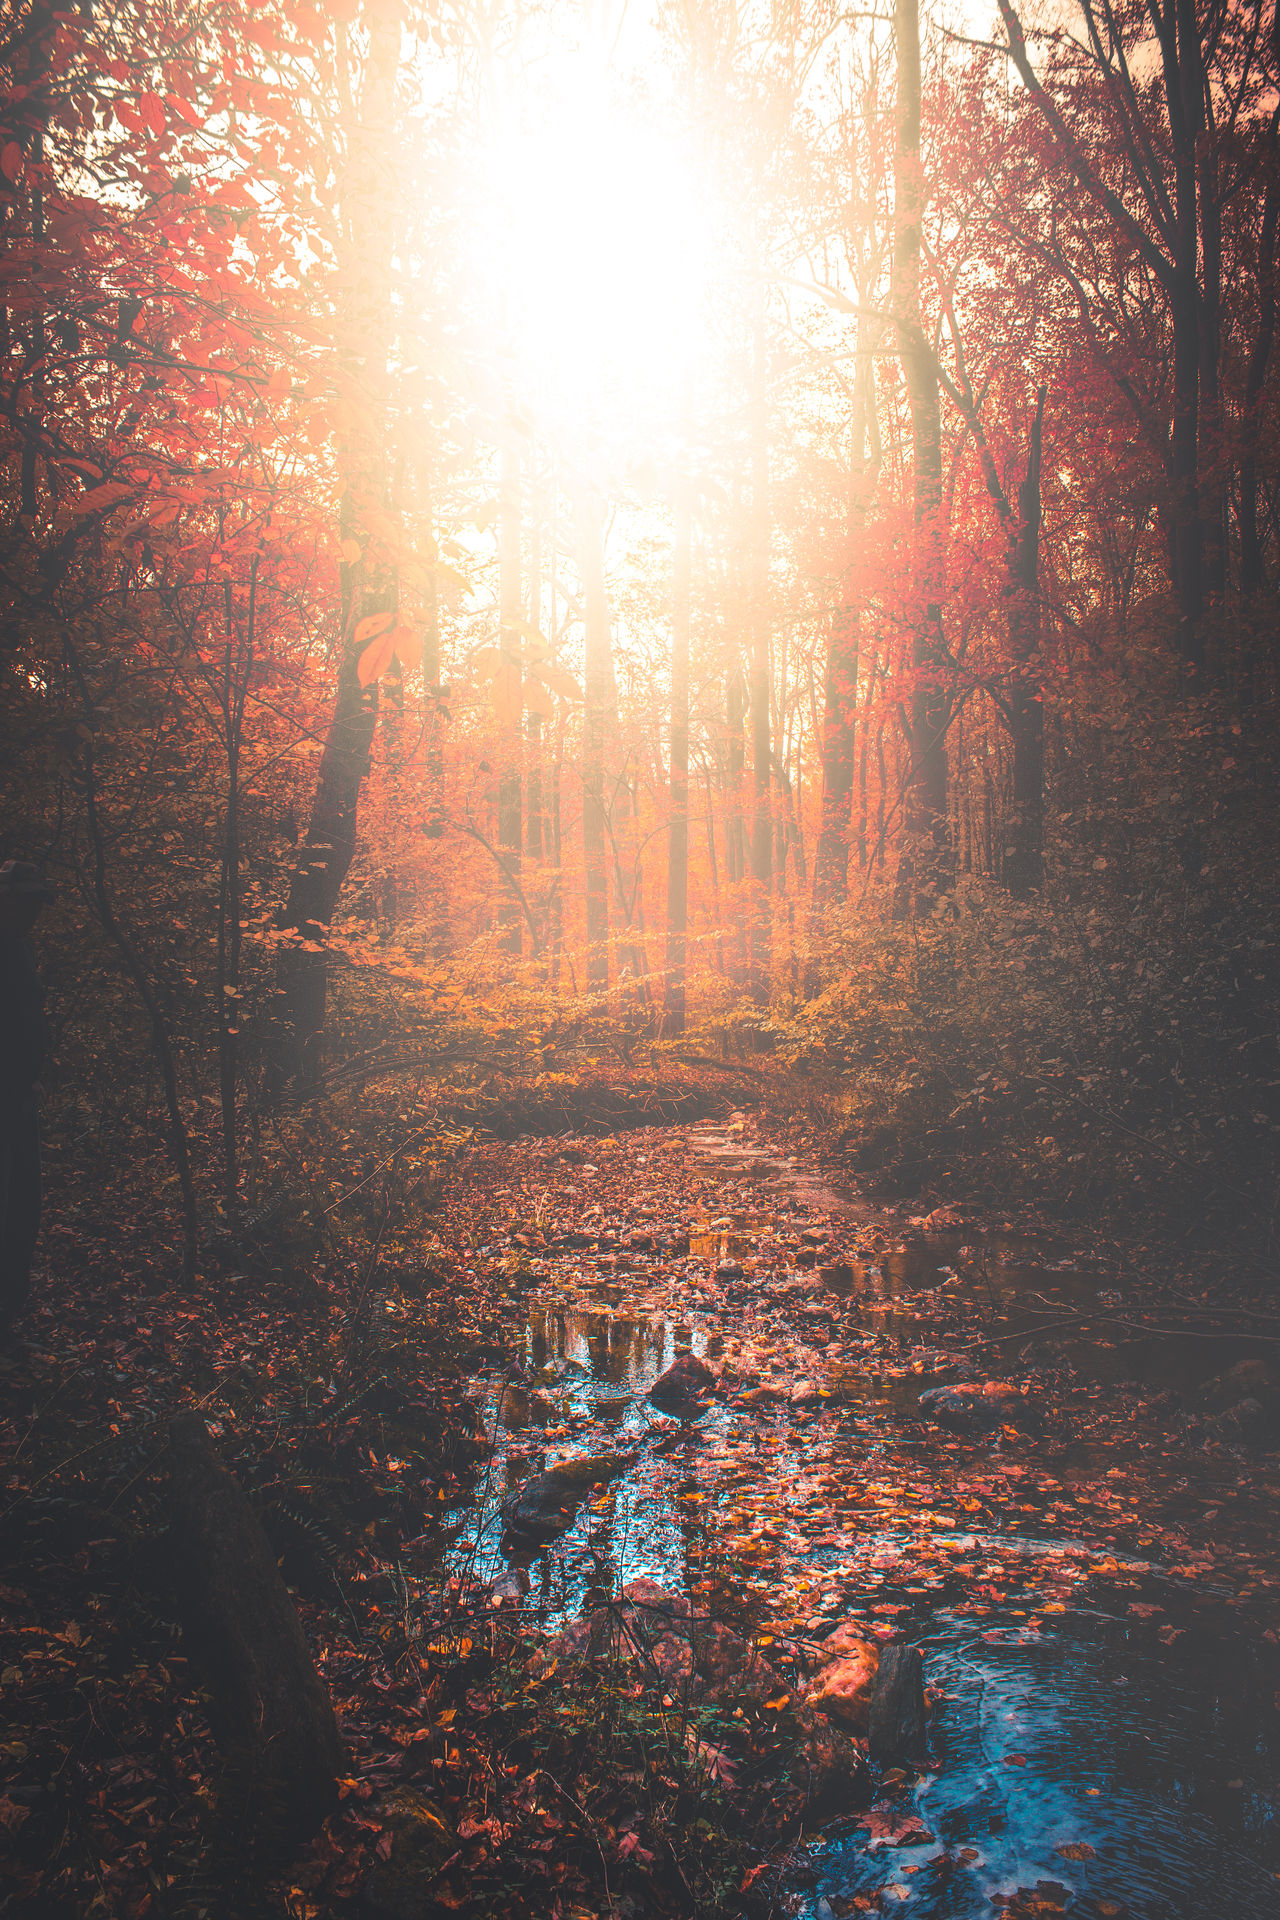 Sunset Wet Nature Full Frame No People Sky Backgrounds Beauty In Nature Water Tree Day Autumn New Eyeemphotography Trees Forest EyeEmBestEdits Eye4photography  Colors Outdoors Tree Beauty Exploring Eye4photography  EyeEm Gallery